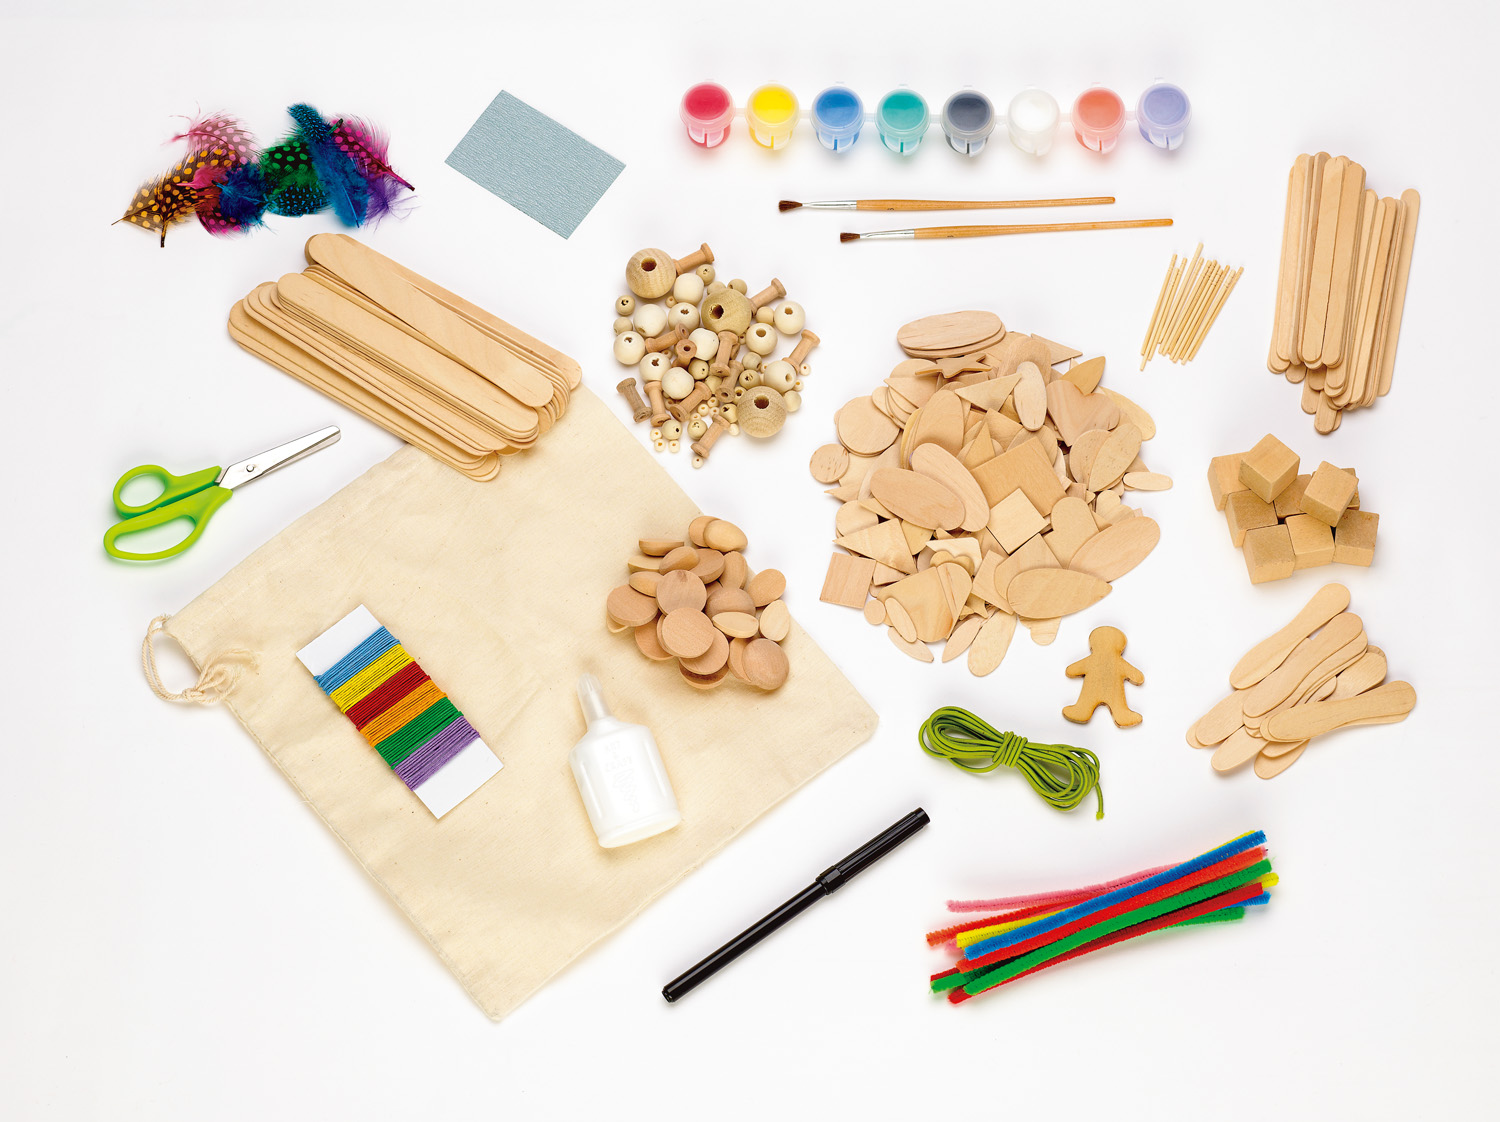 e0d27c16d What comes in the kit? · Jumbo wood craft sticks · Flat wood shapes ·  Cotton storage bag · Dimensional wood shapes · Assorted wood beads spools